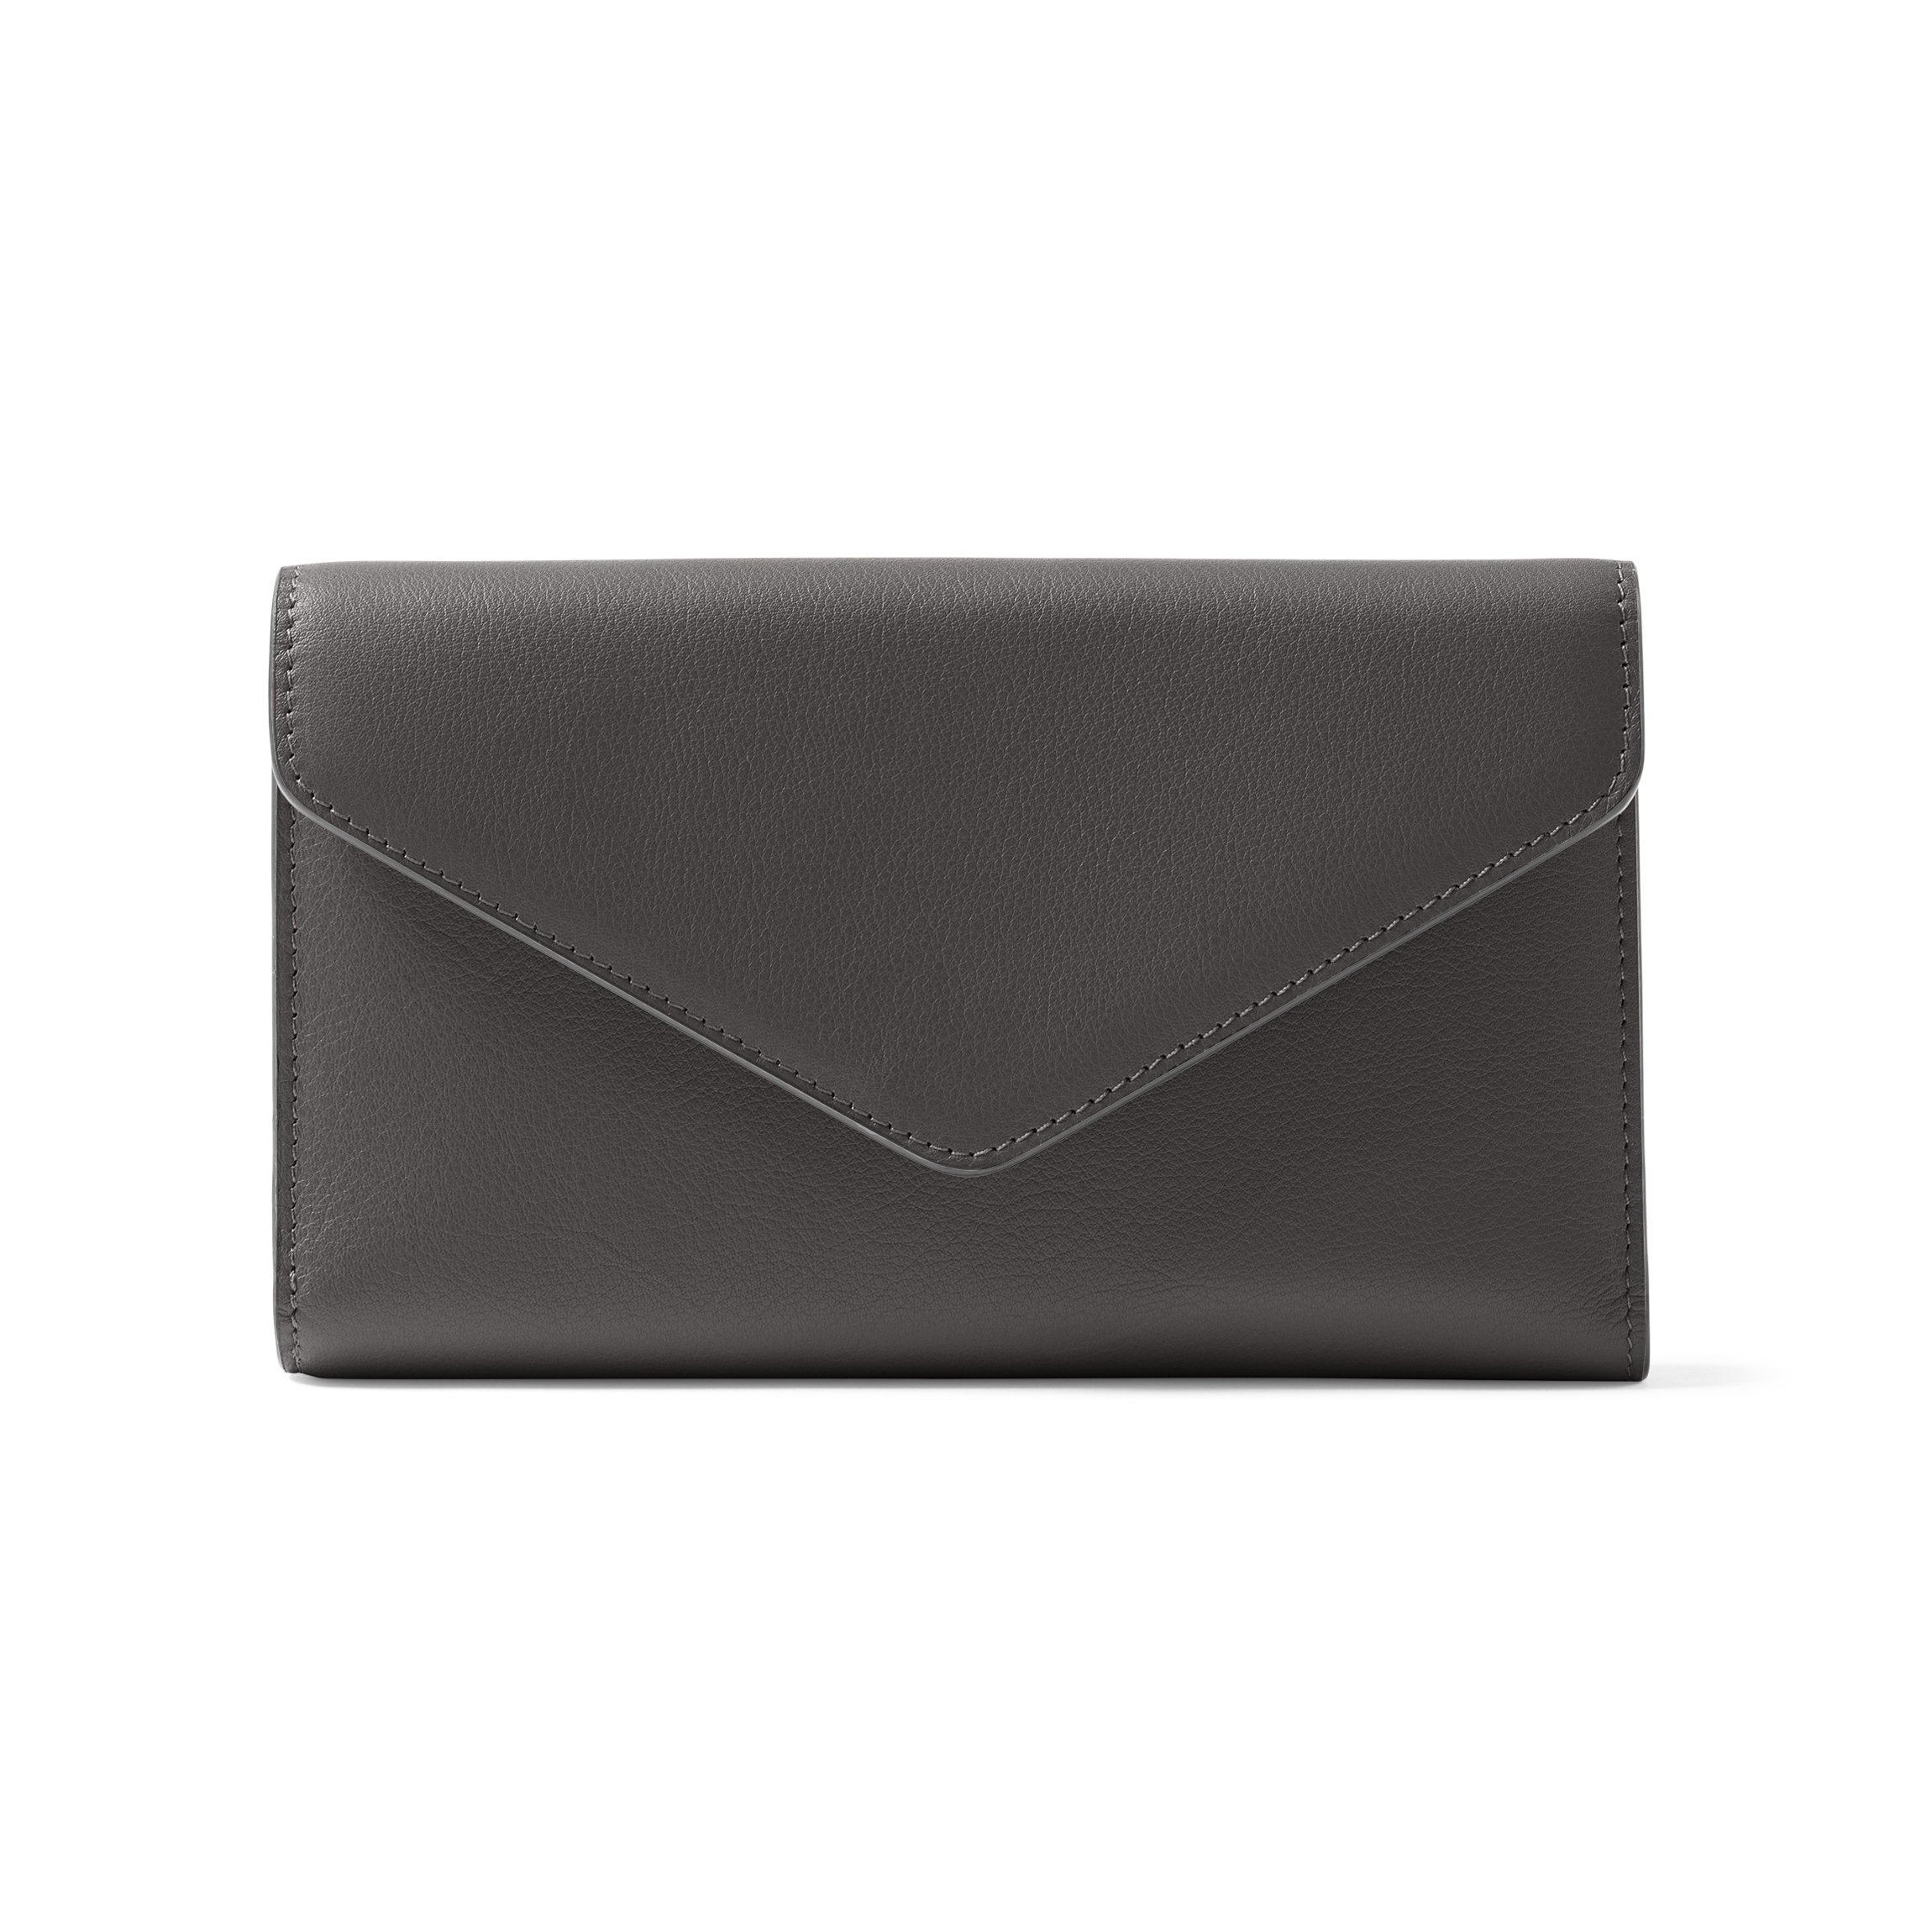 Trinity Checkbook Wallet - Full Grain Leather Leather - Black Onyx (black)